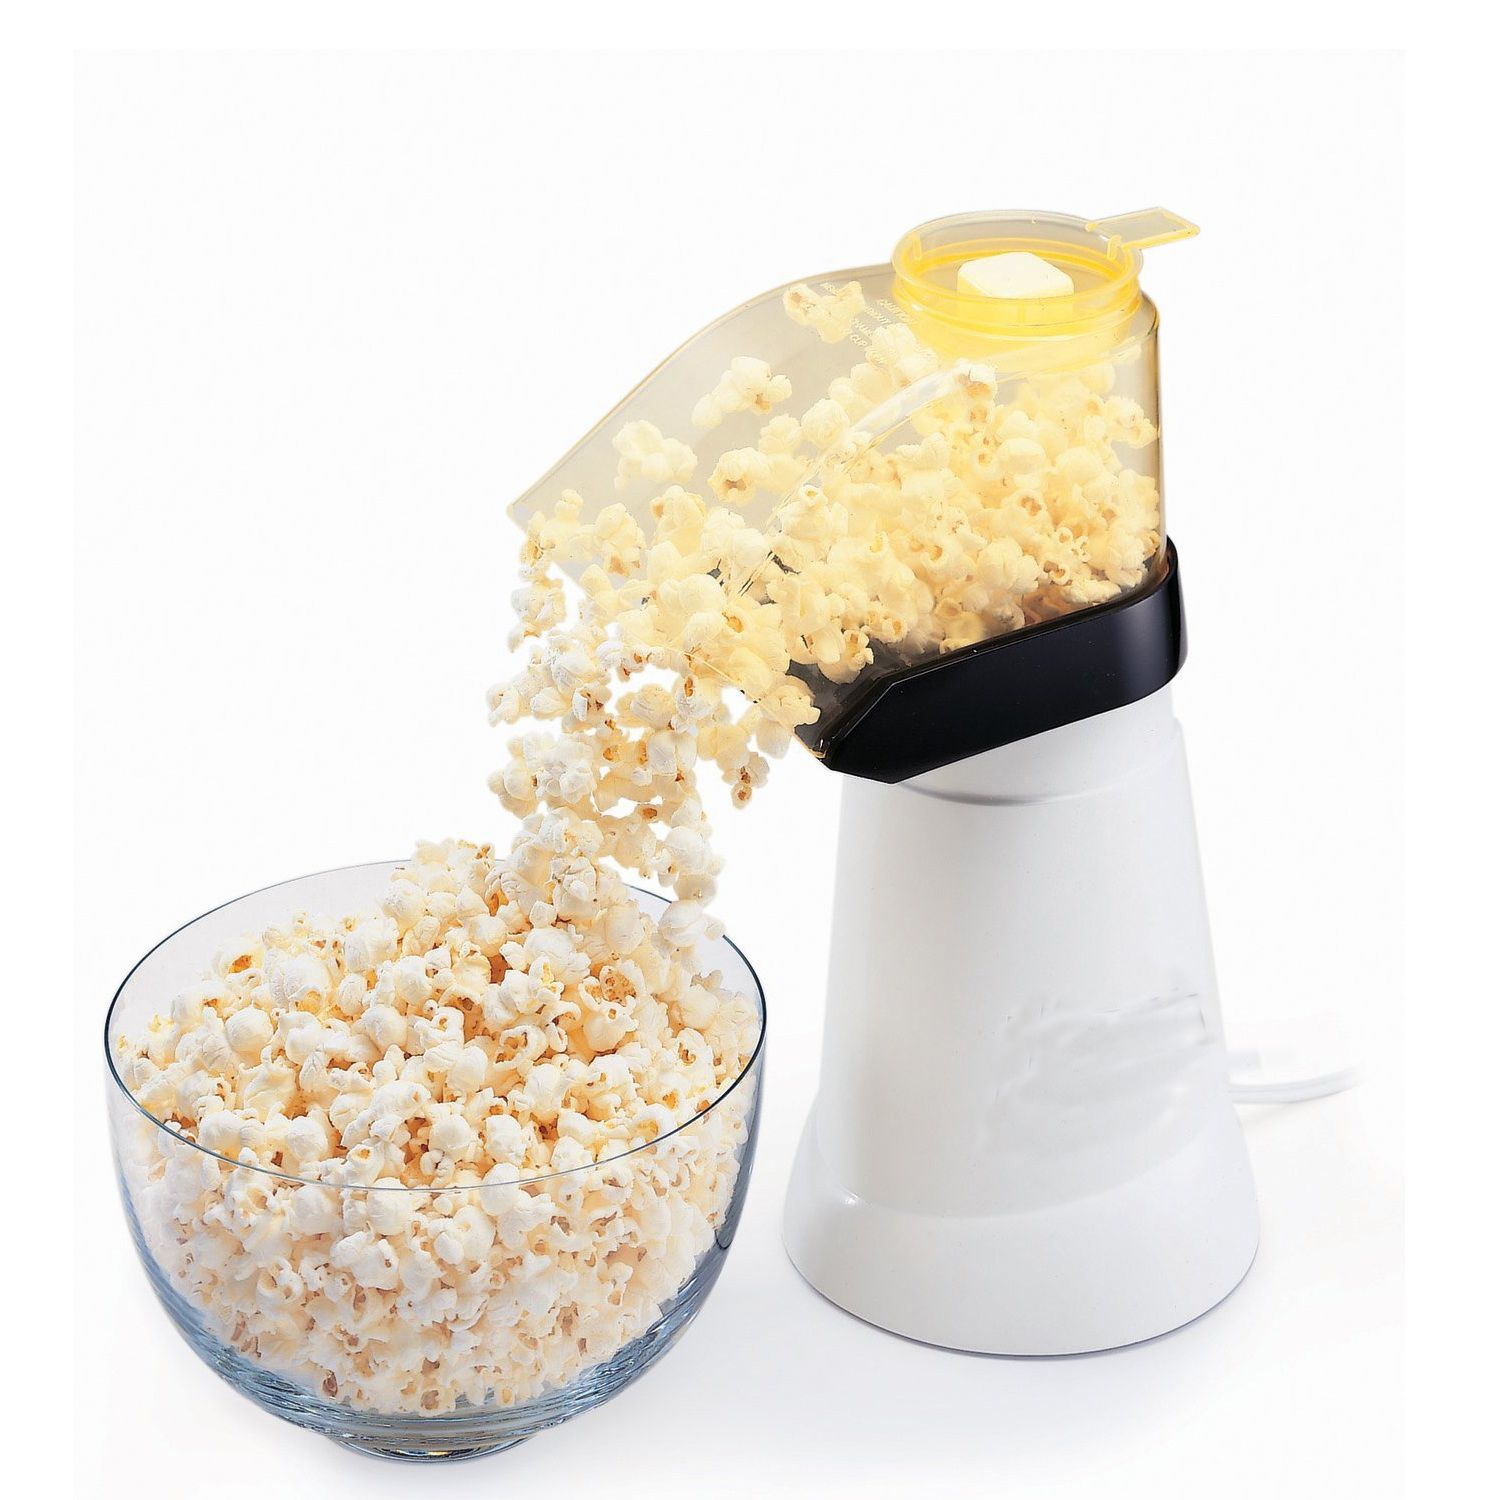 Popcorn Maker • Hot air corn popper makes up to 18 cups of